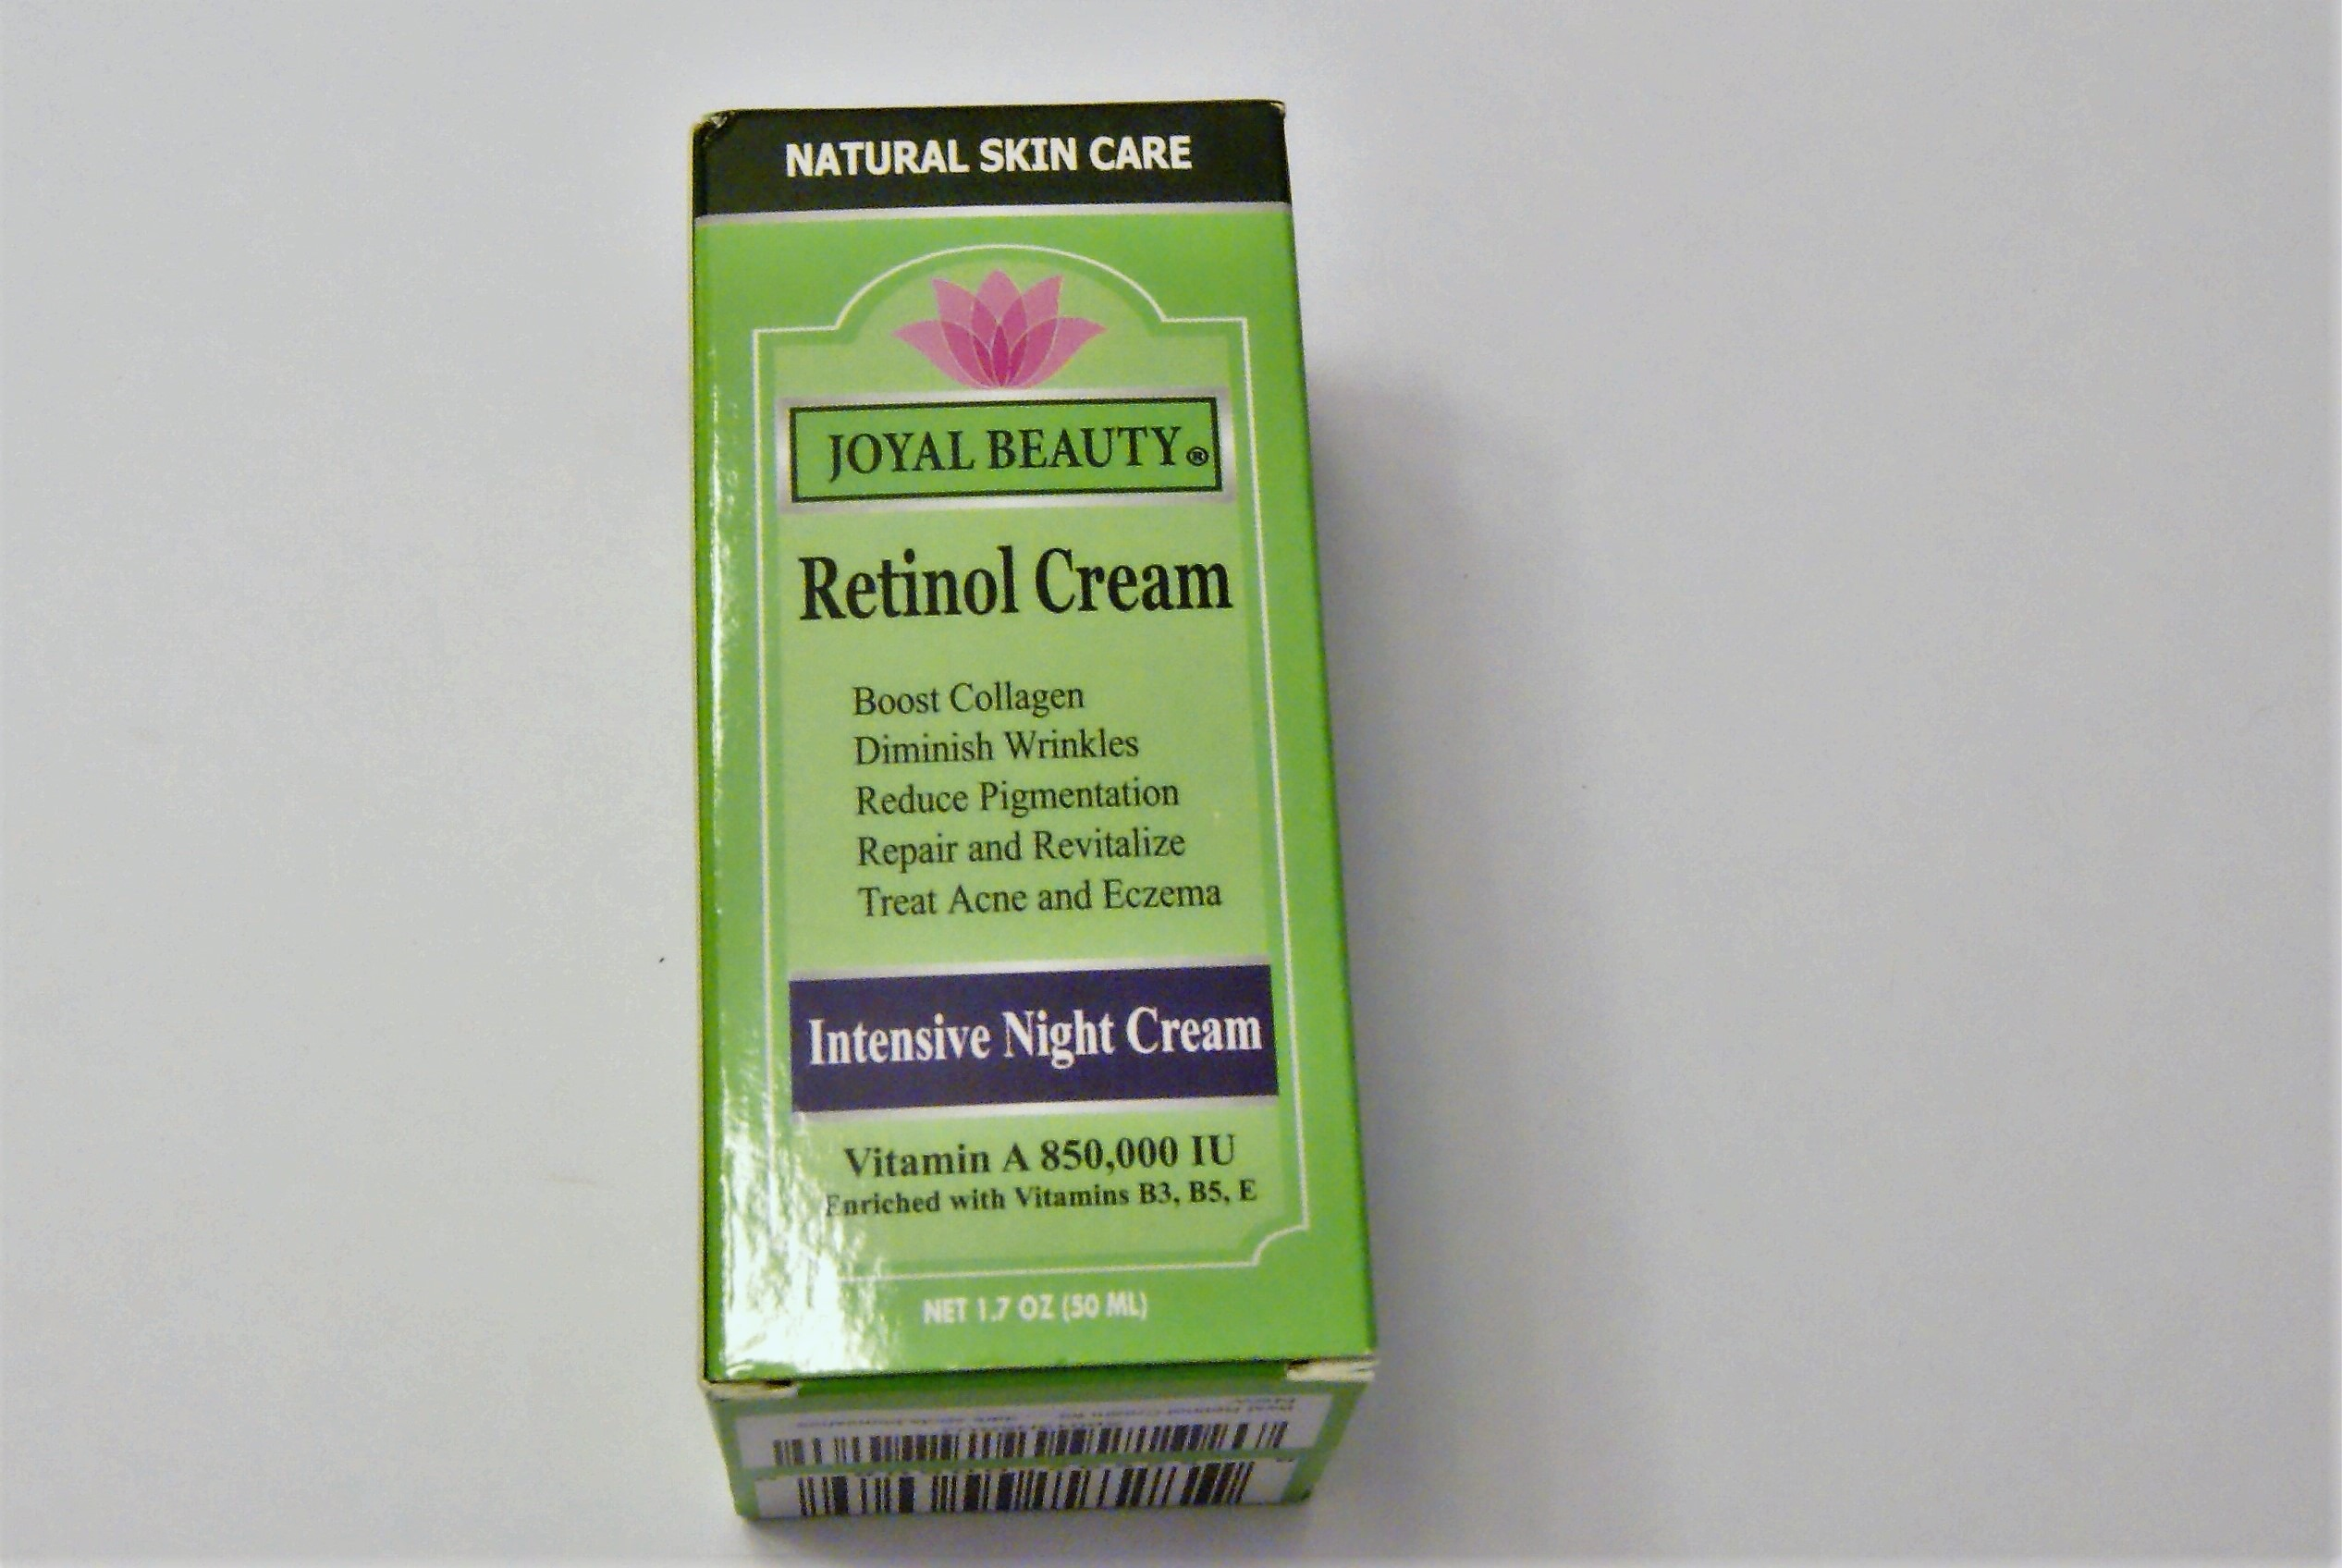 Joyal Beauty Retinol Cream